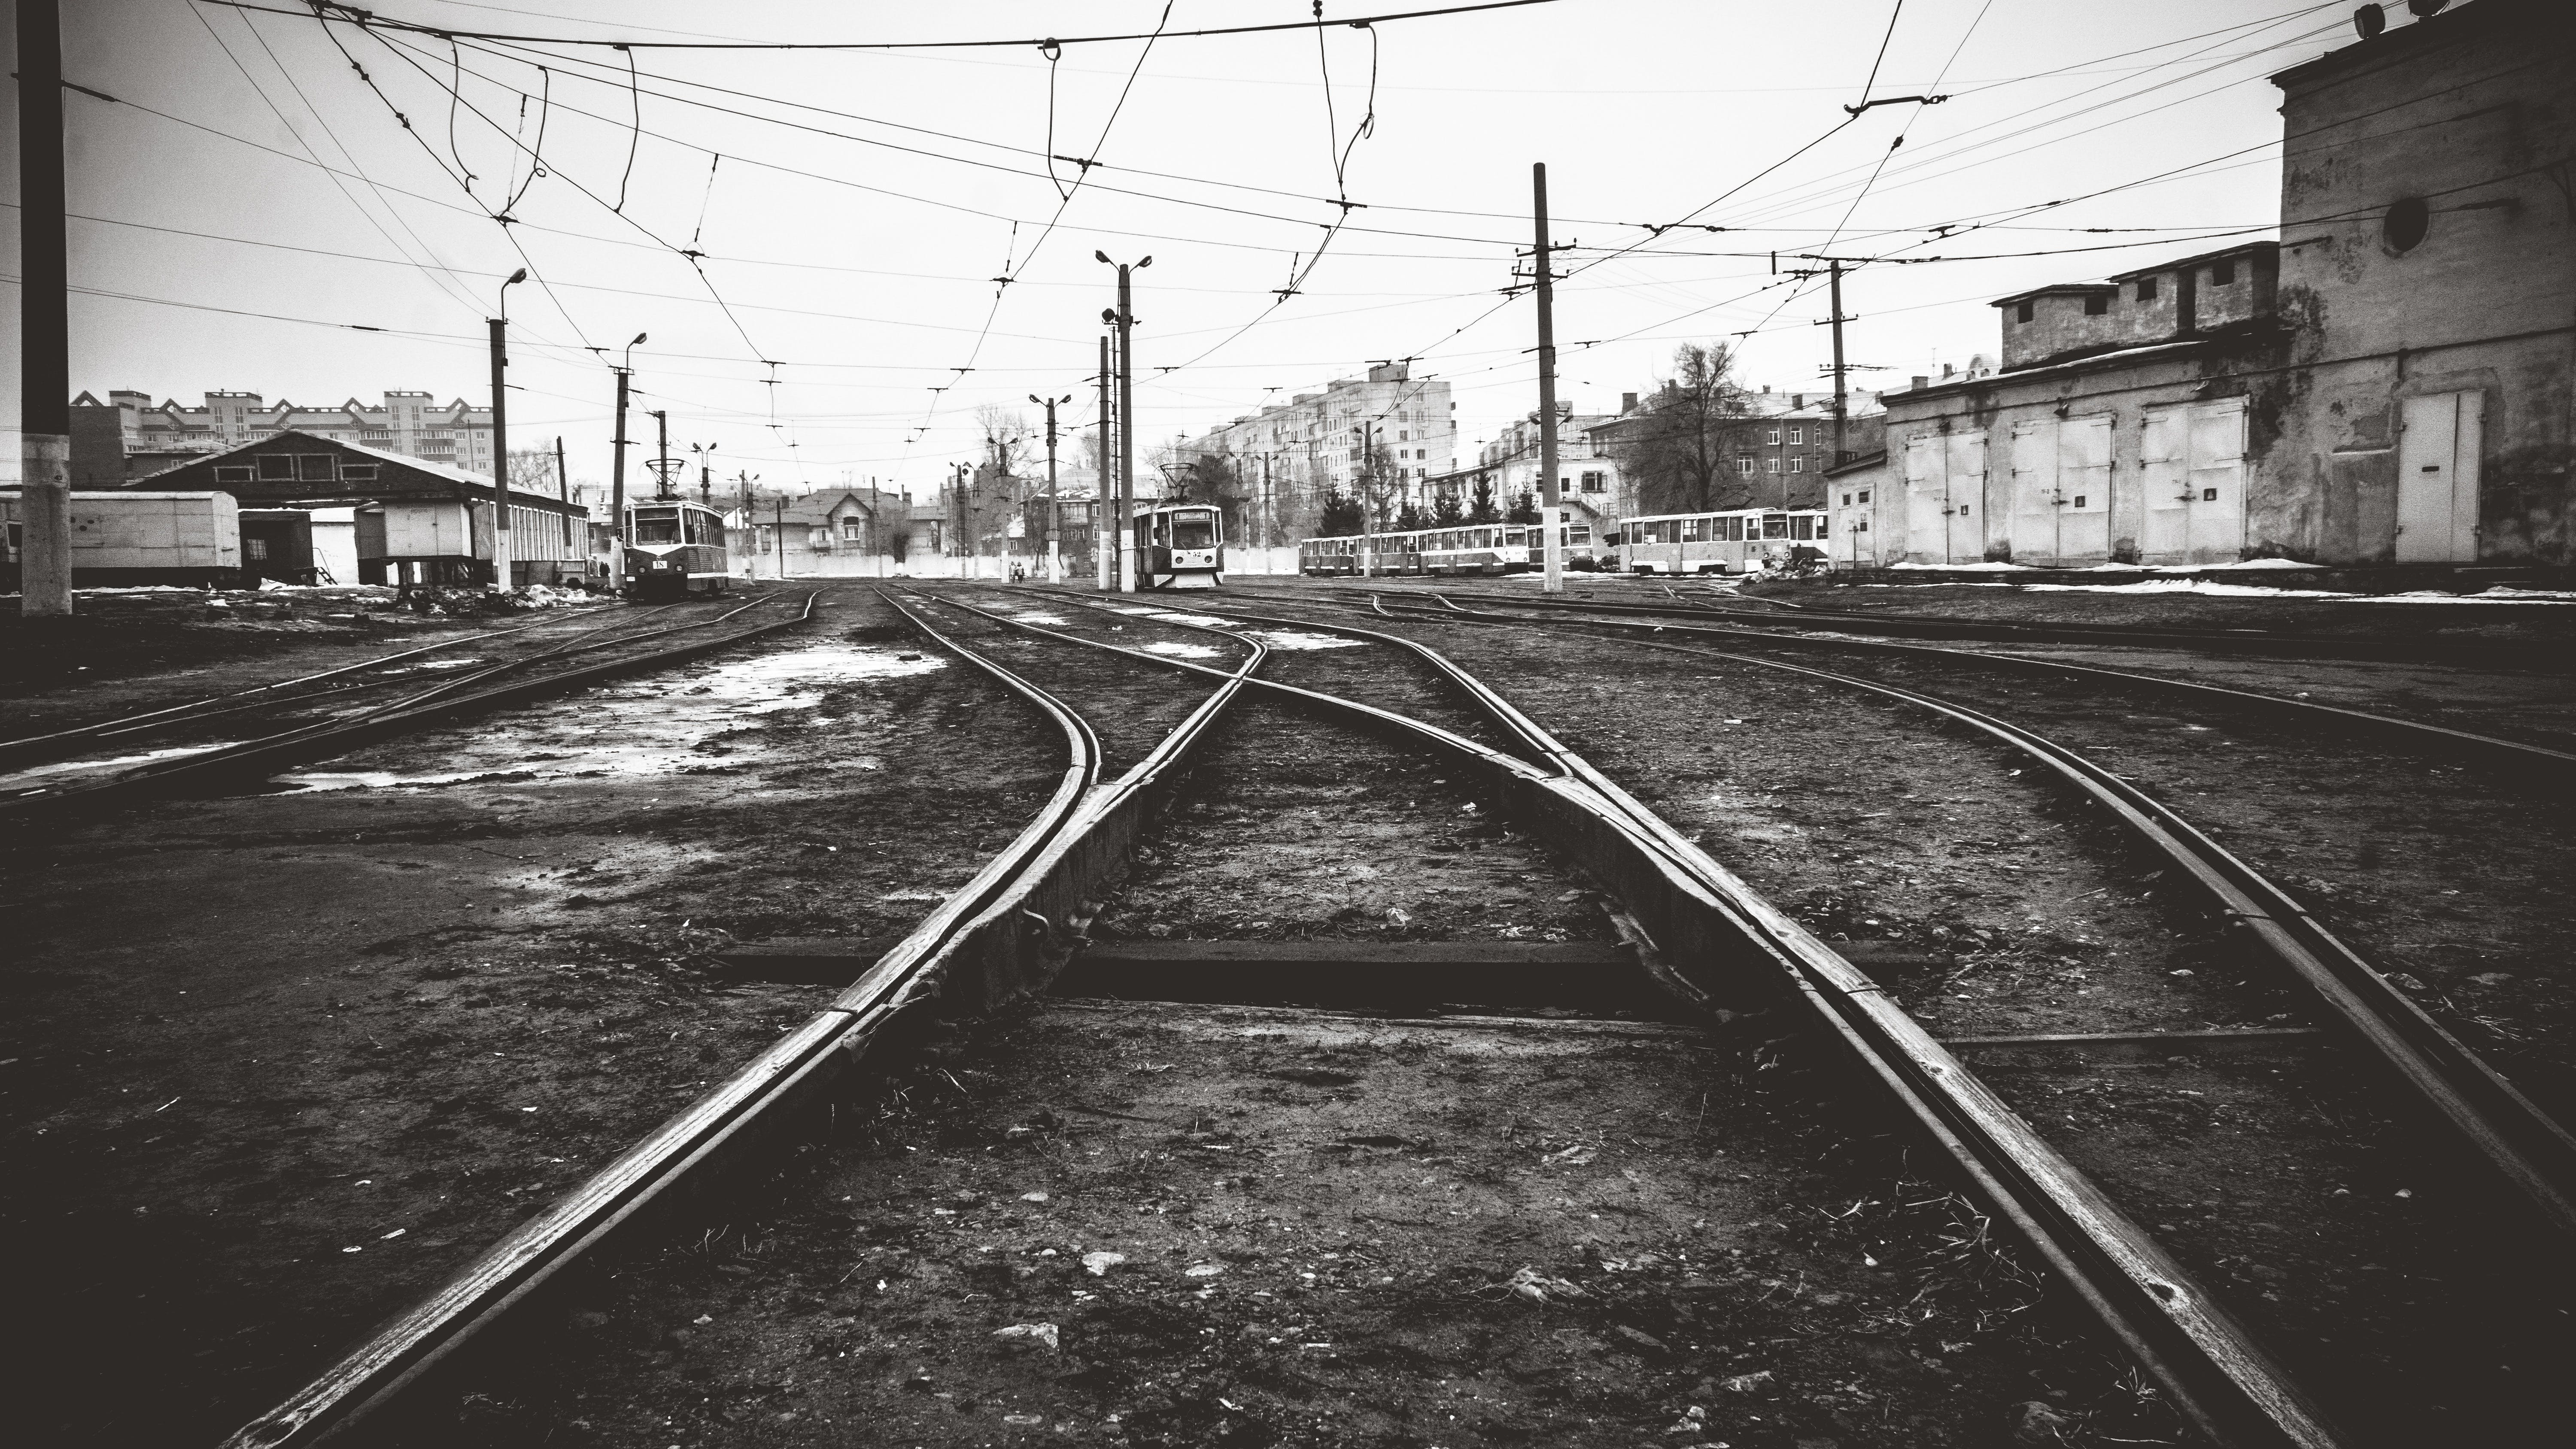 Grayscale Photography of Railway